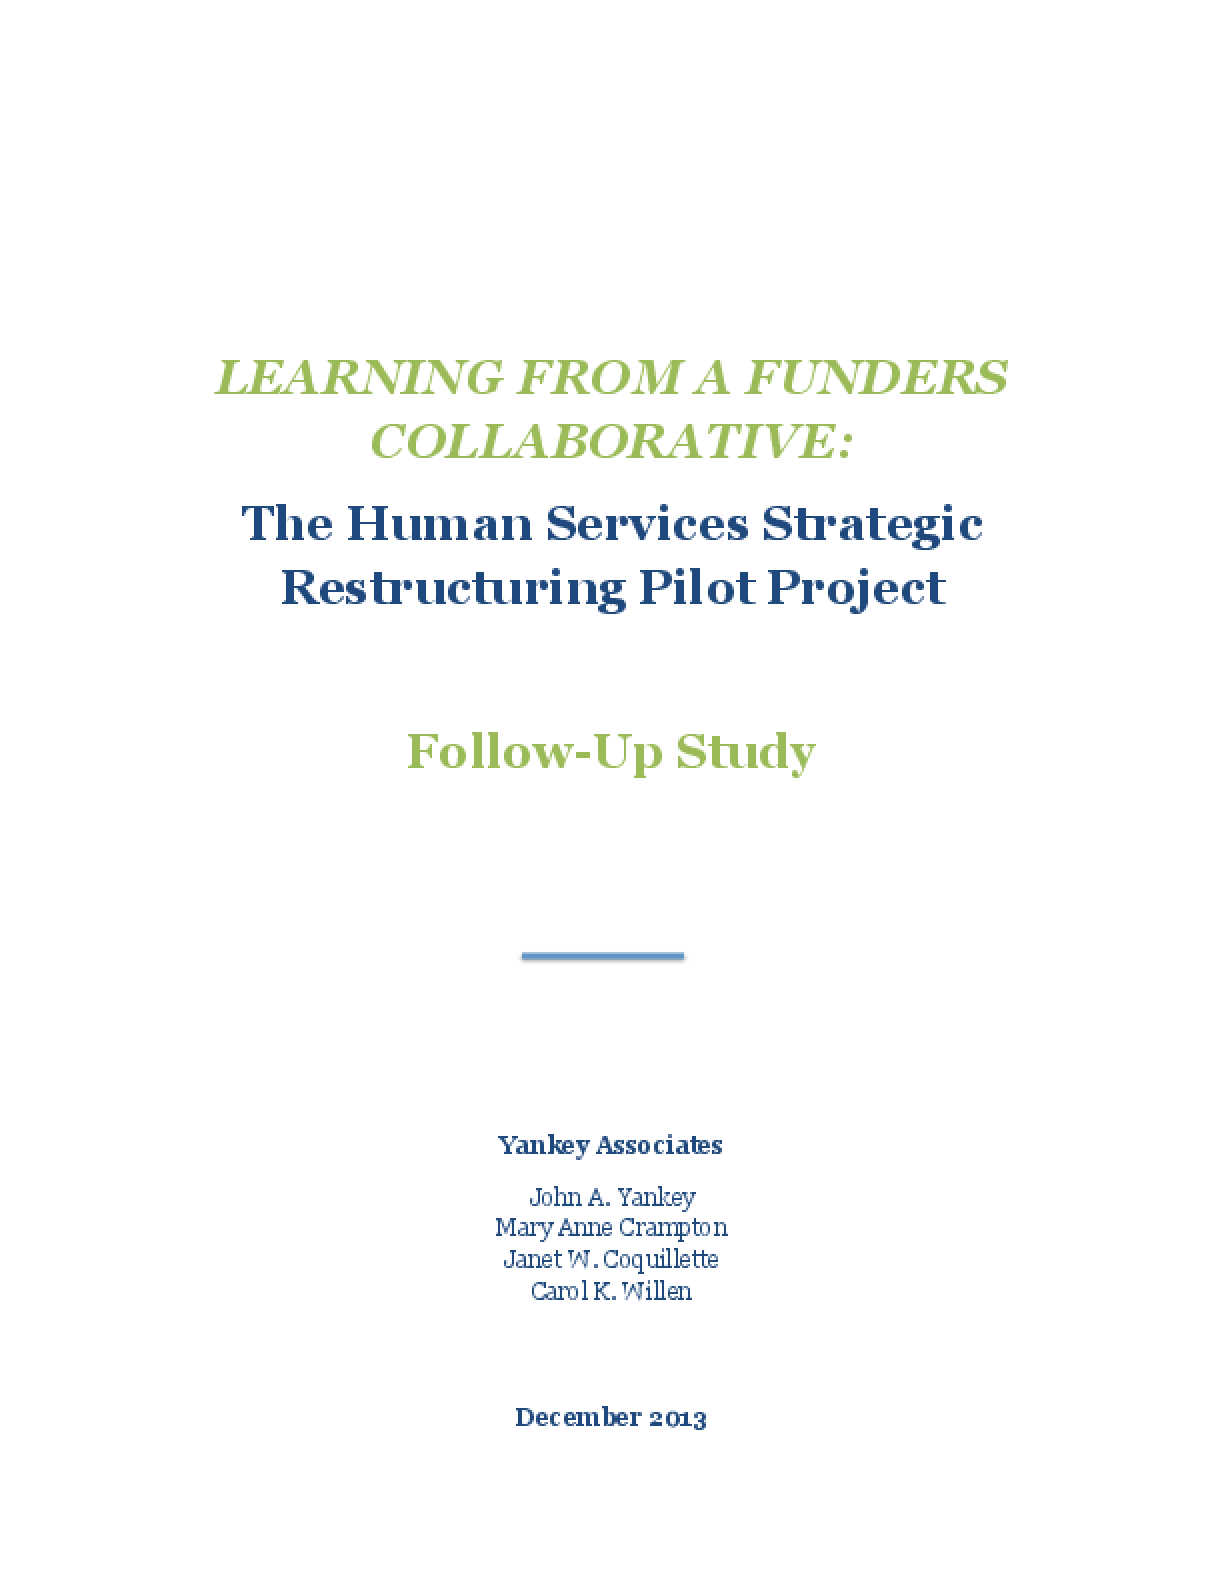 Learning from a Funders' Collaborative: The Human Services Strategic Restructuring Pilot Project